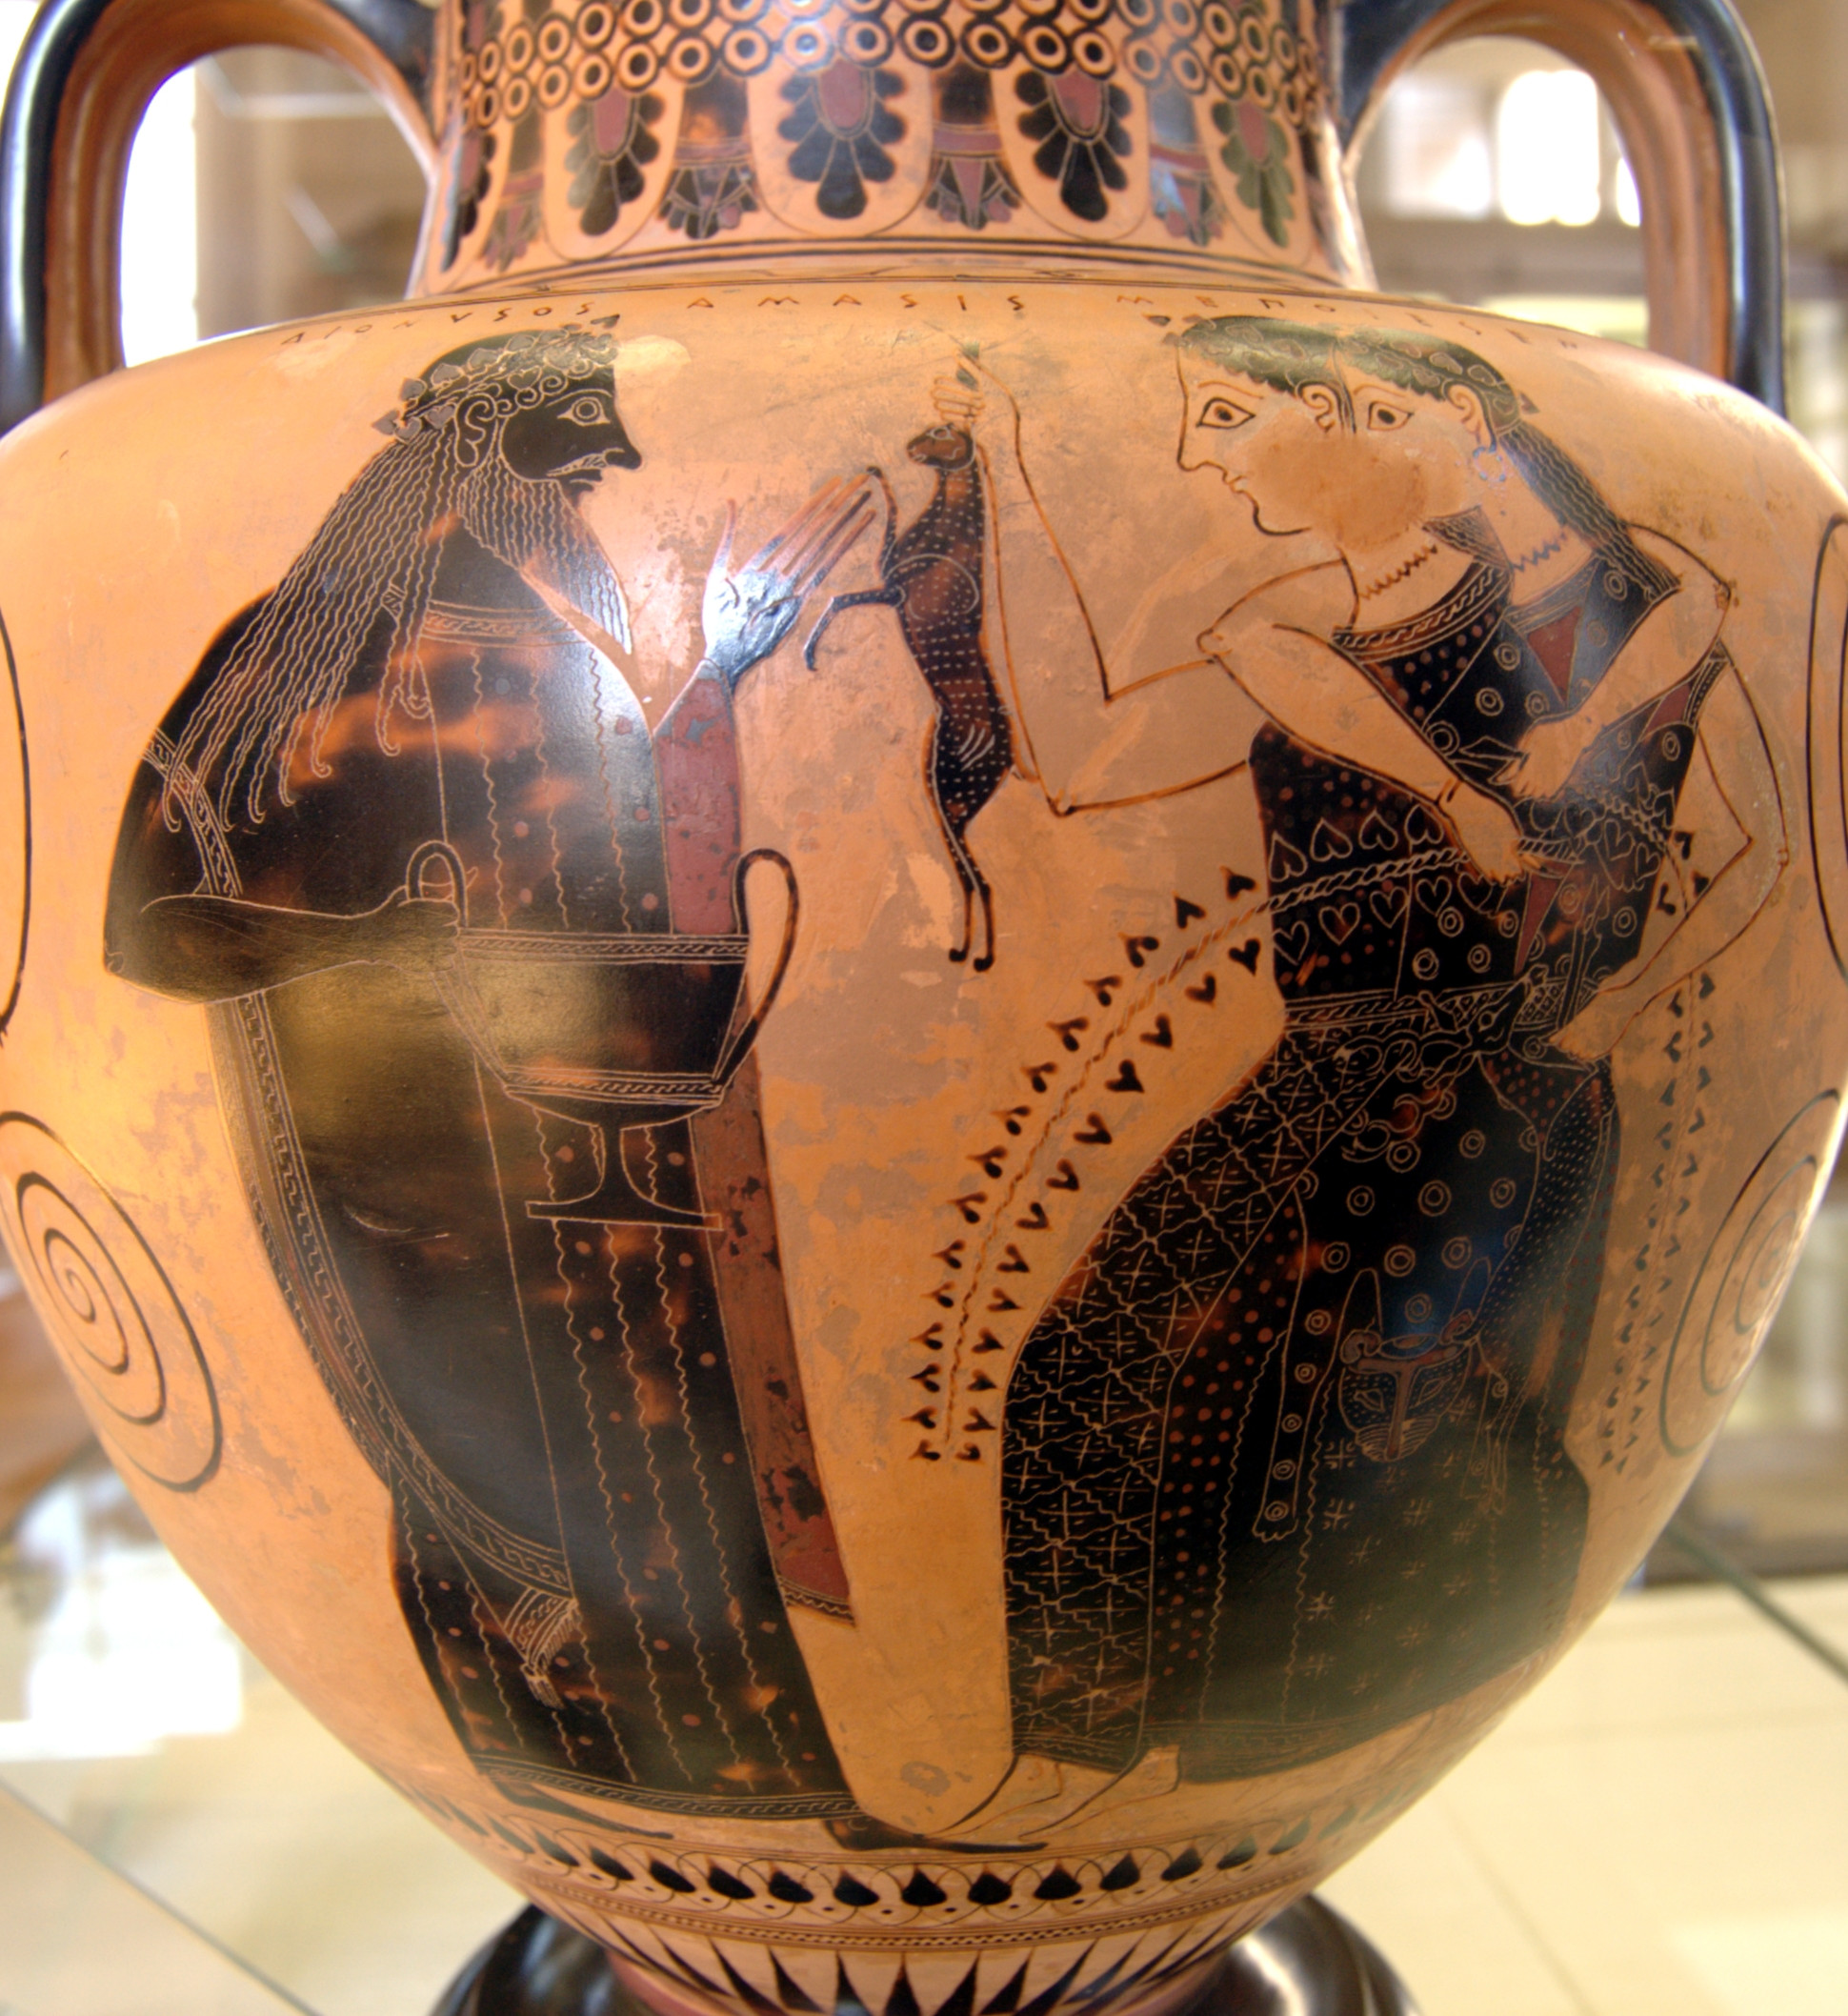 french vases for sale of black figure pottery wikipedia with regard to dionysus and two maenads one holding a hare neck amphora ca 550 530 bc from vulci now cabinet des madailles de la bibliotha¨que nationale de france